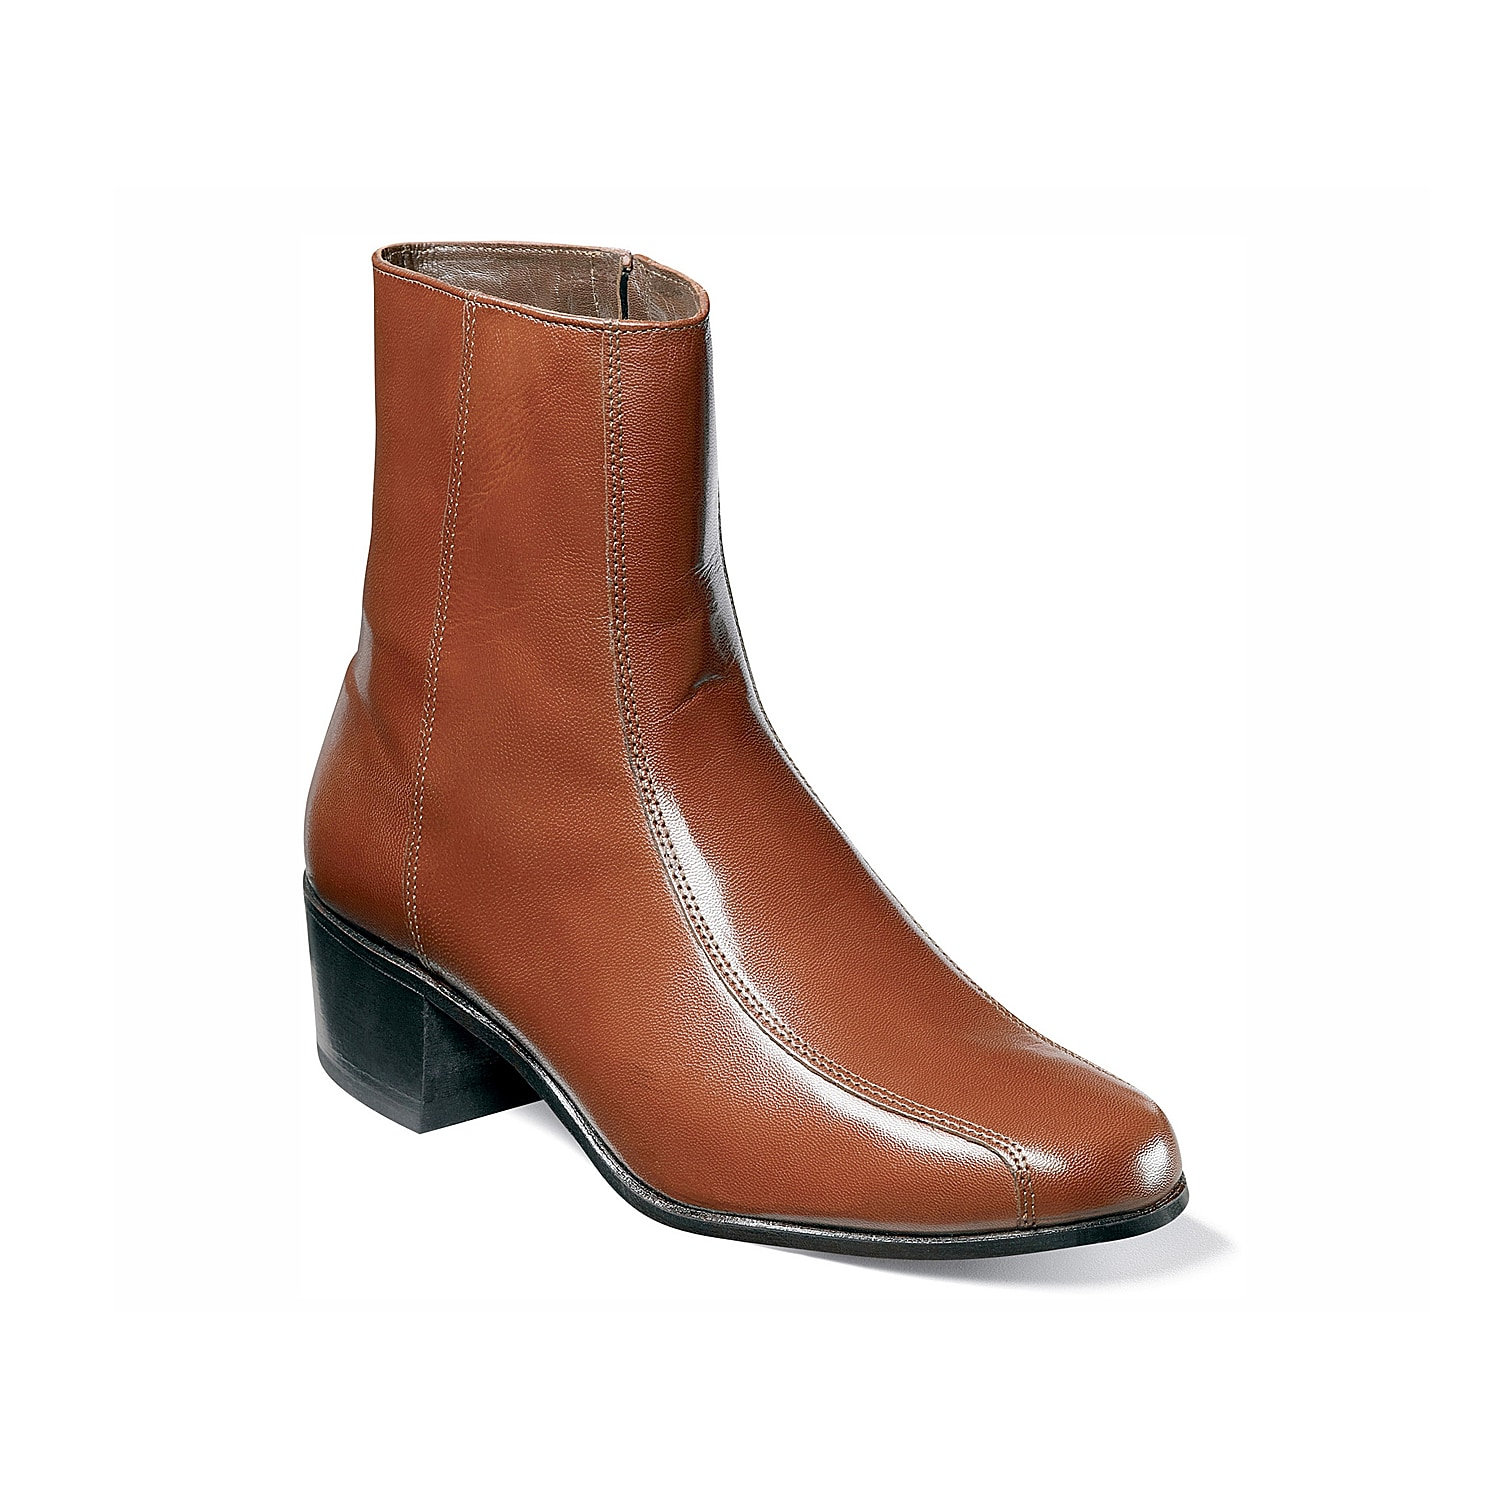 This genuine Florsheim Duke ankle zip boot is a classic that boasts a sleek, understated silhouette.